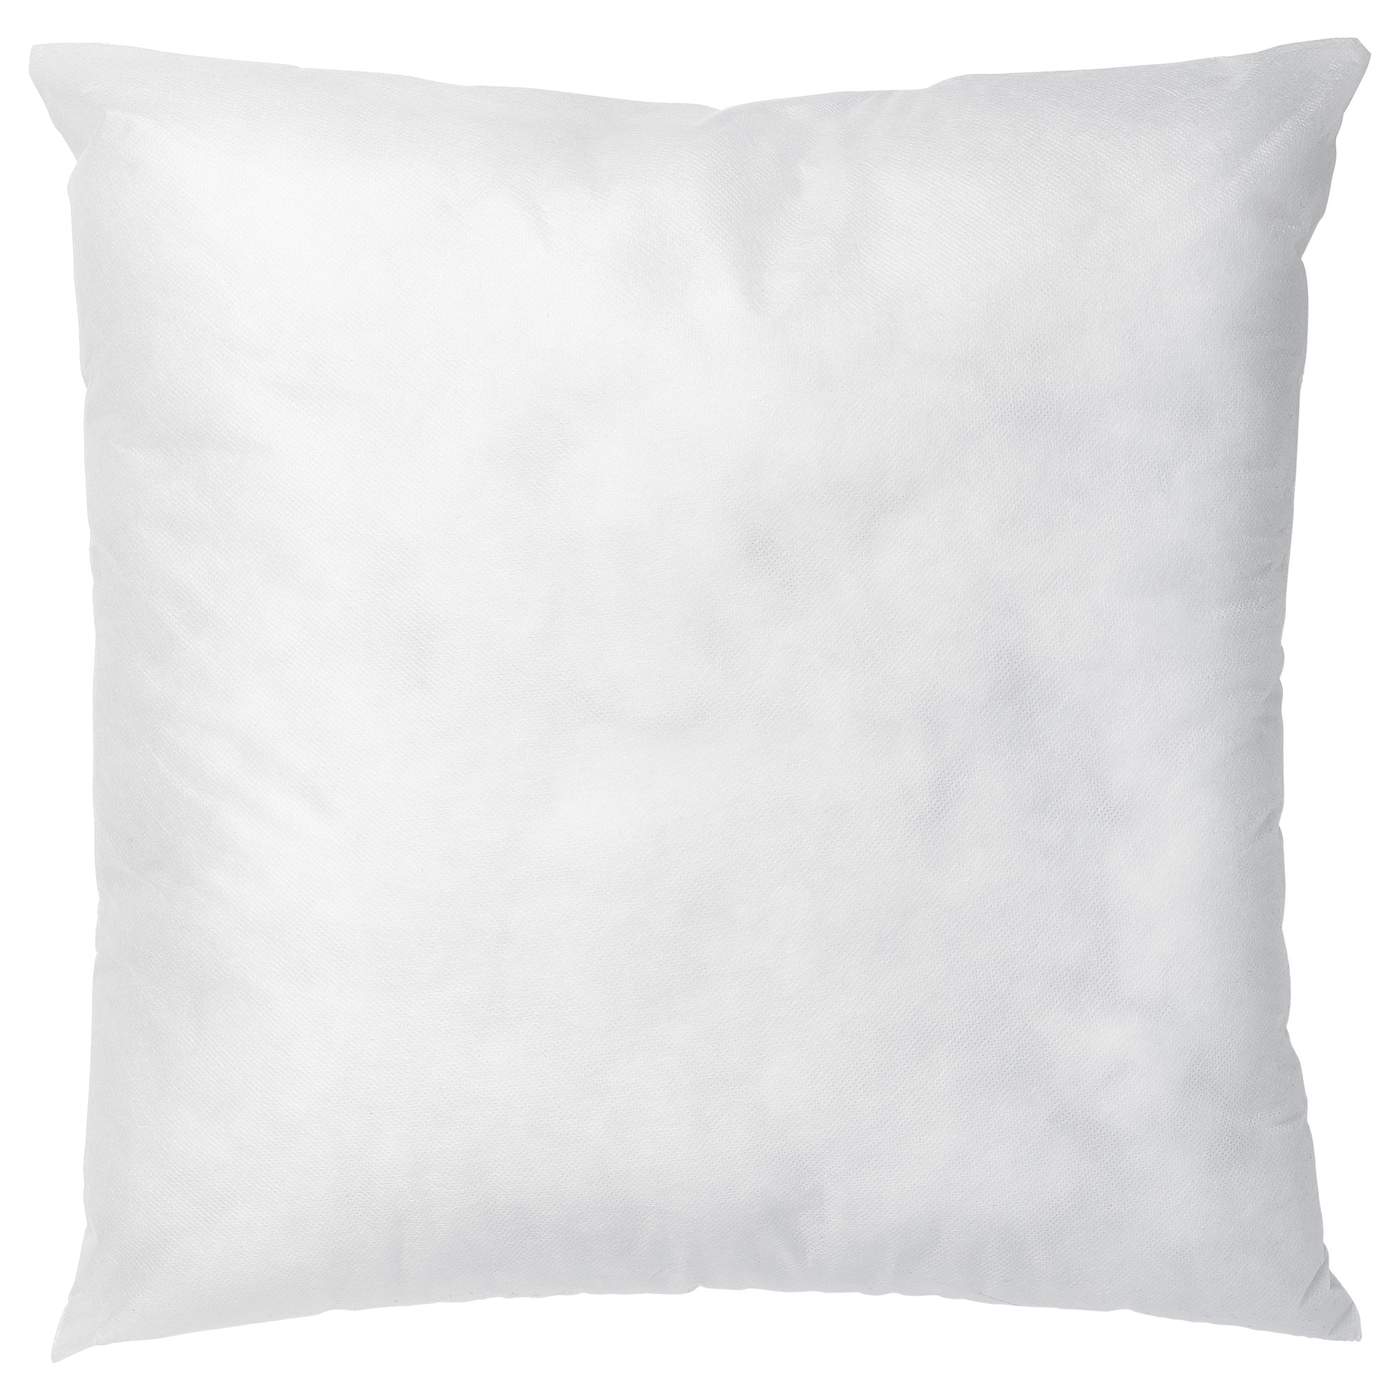 Inner Inner Cushion White 20x20 Ikea